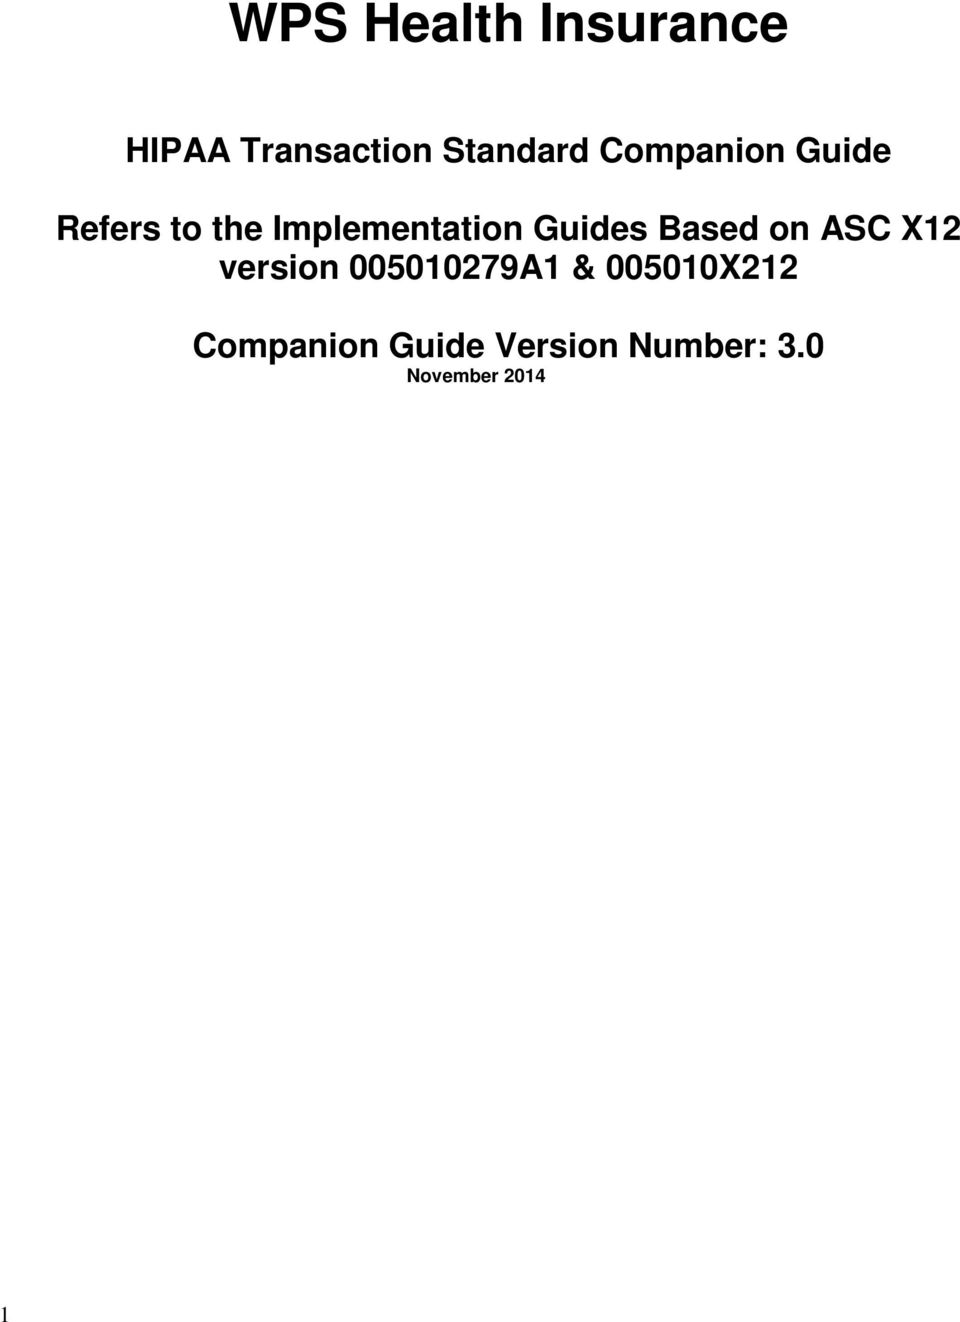 Guides Based on ASC X12 version 005010279A1 &